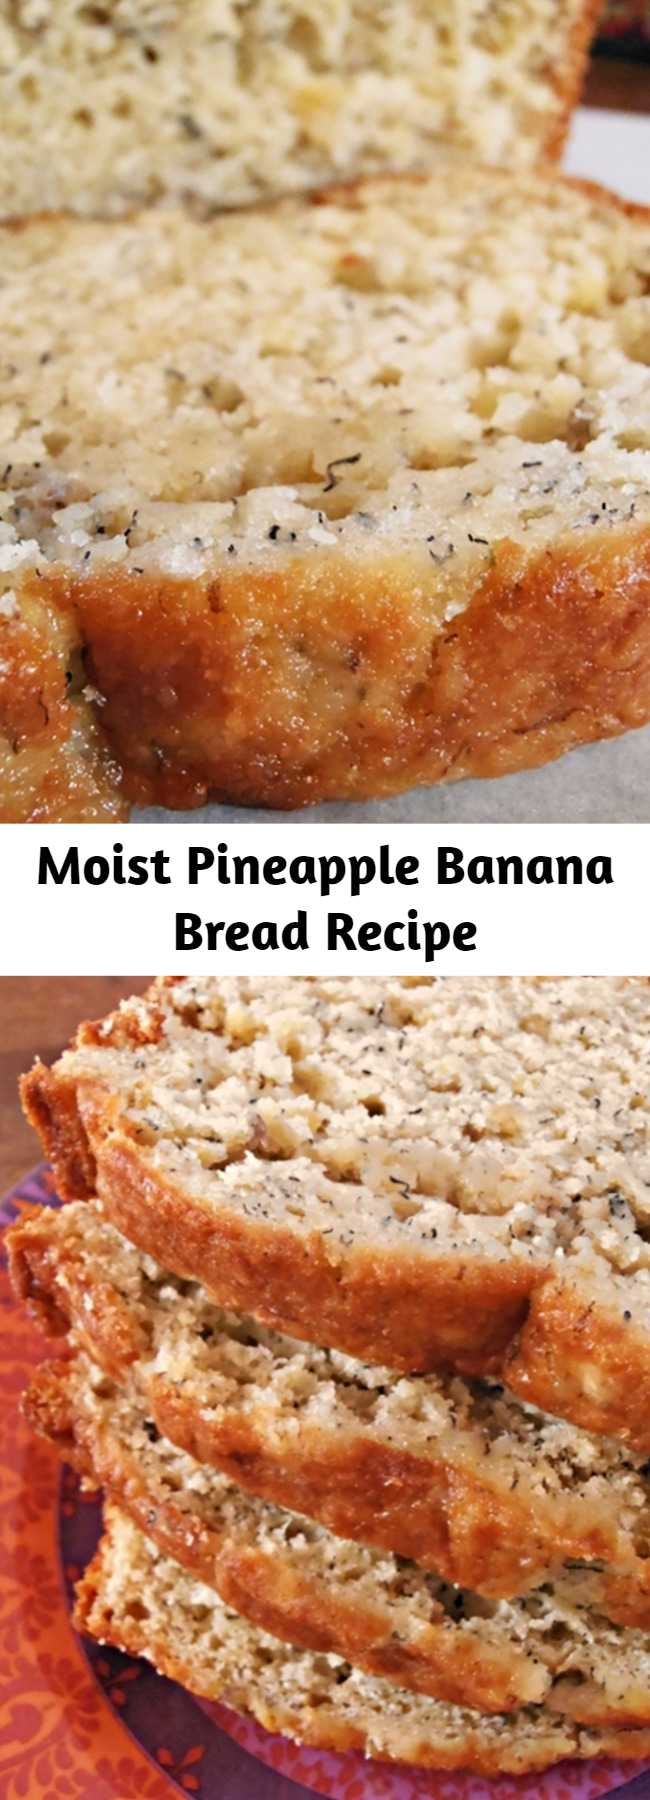 Moist Pineapple Banana Bread Recipe - Moist Pineapple Banana Bread takes a tropical twist on classic banana bread, using crushed pineapple and coconut.